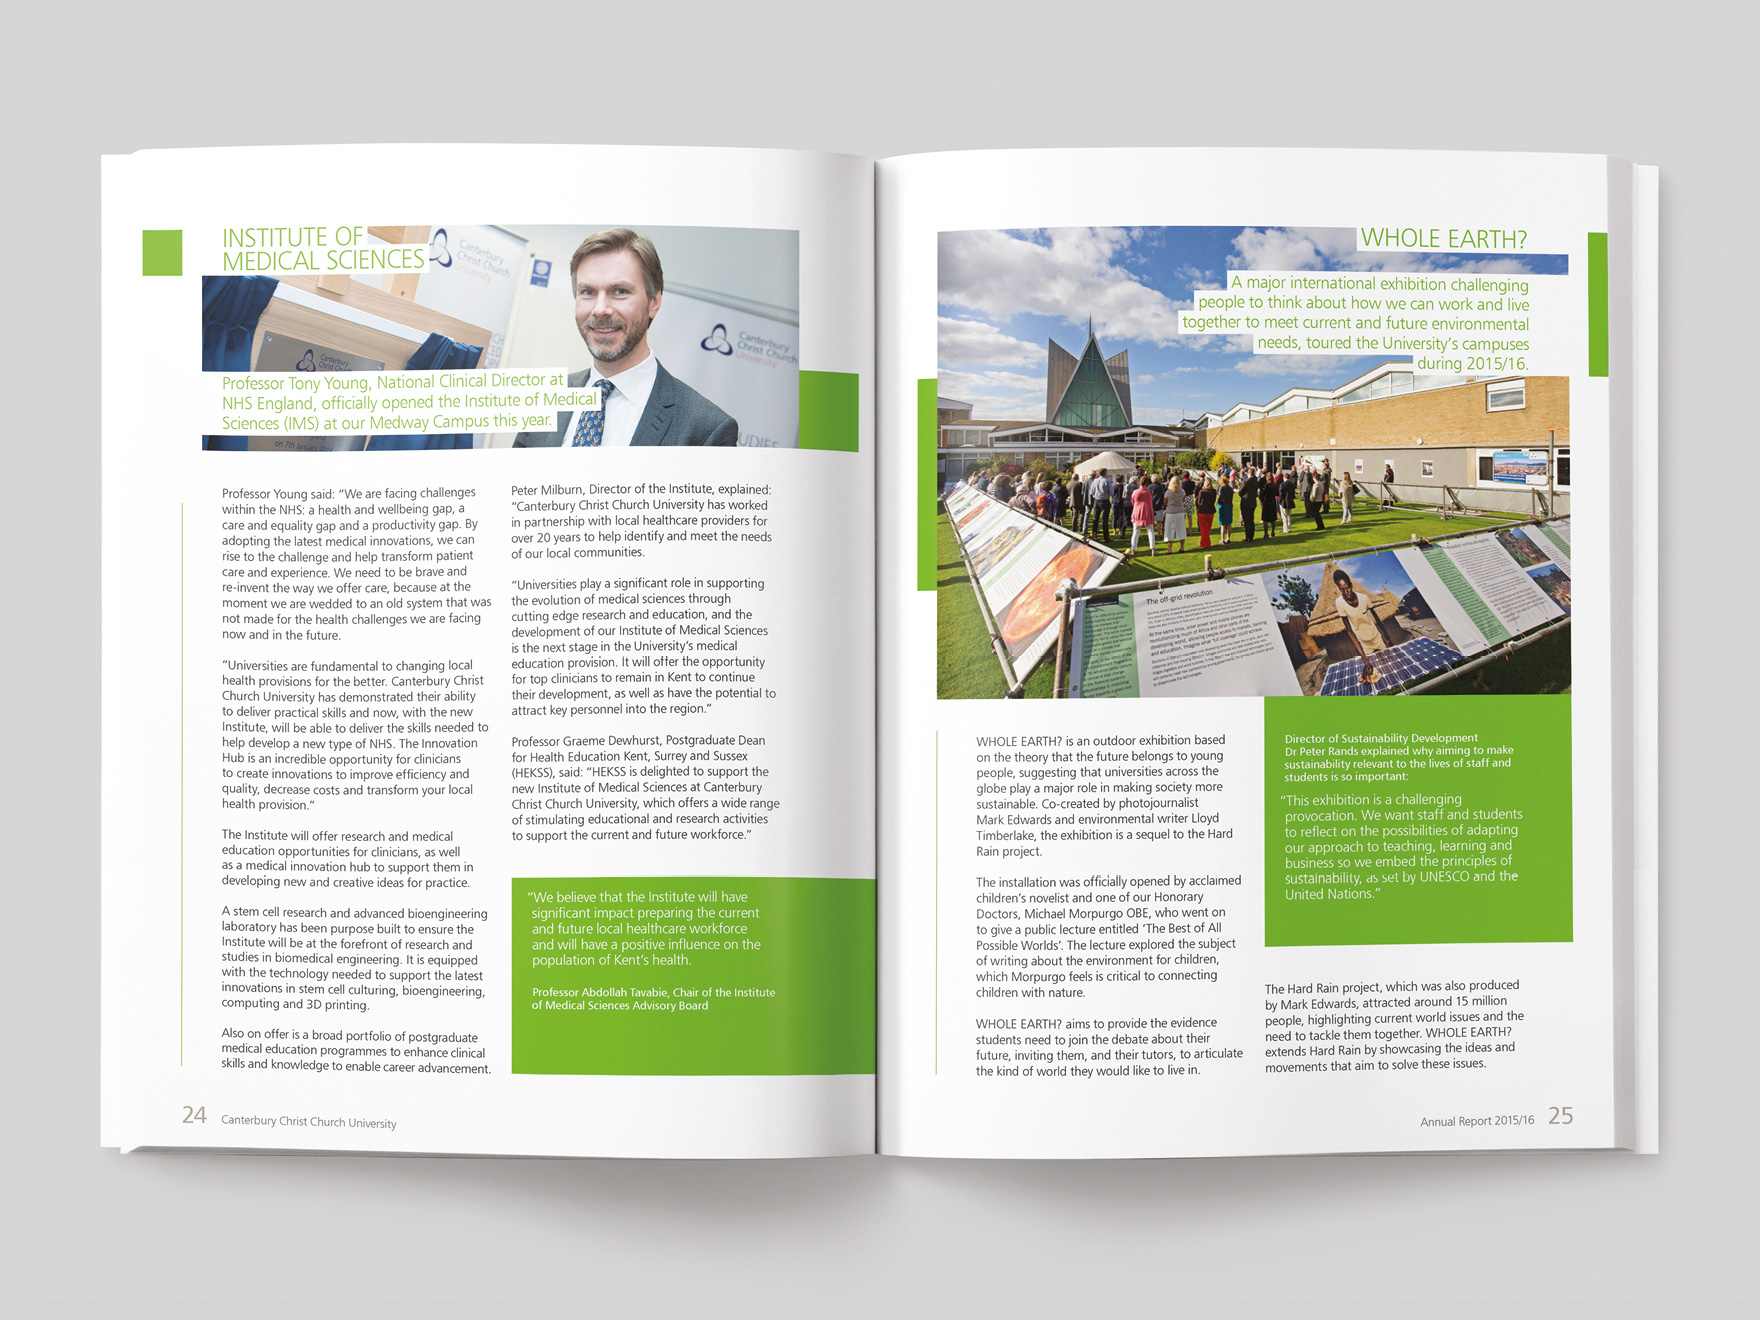 Inside pages from the 2016/16 Canterbury Christ Church University annual report